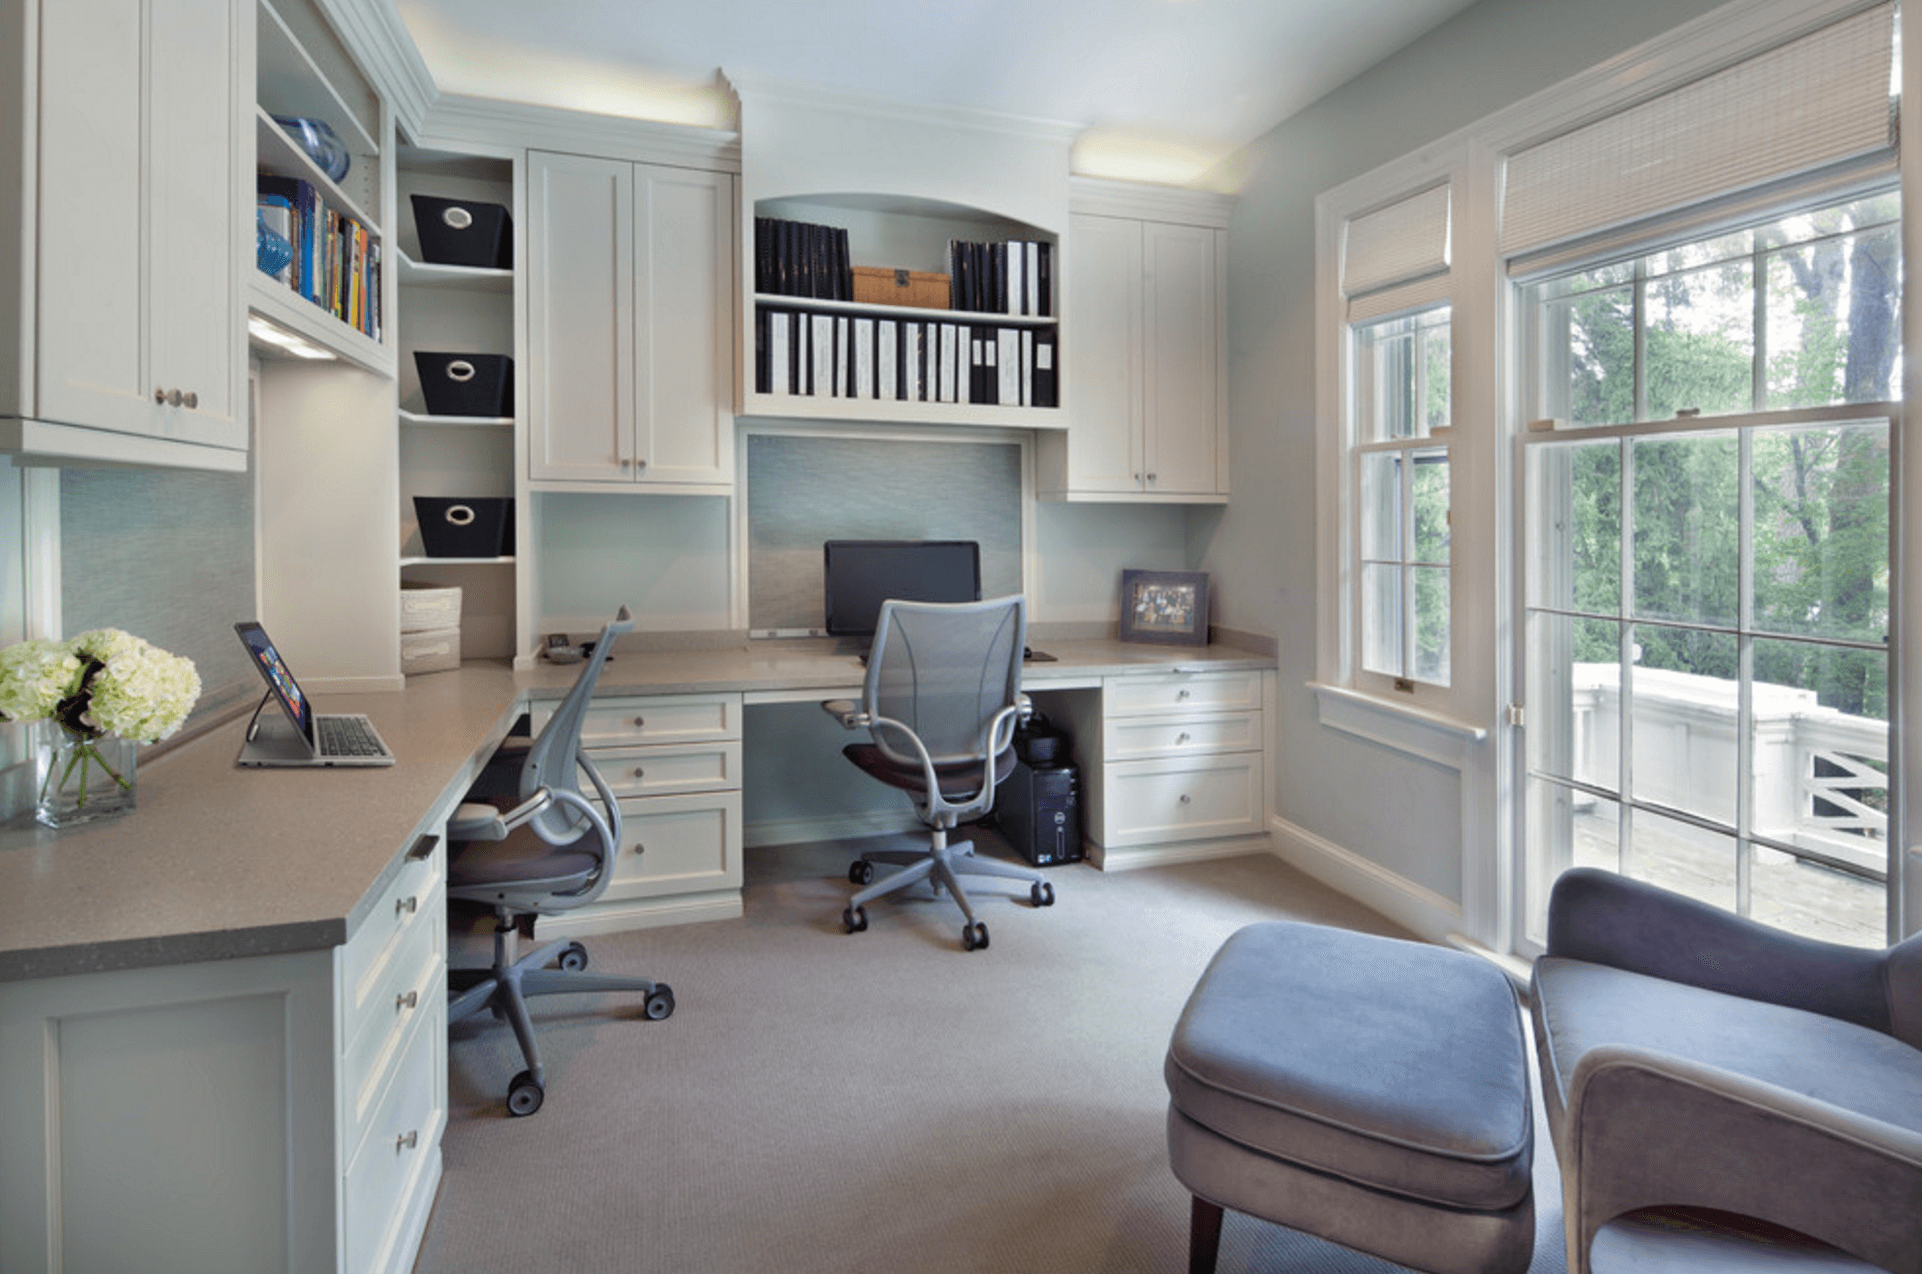 4-Modern-Ideas-for-Your-Home-Office-Décor-22.png